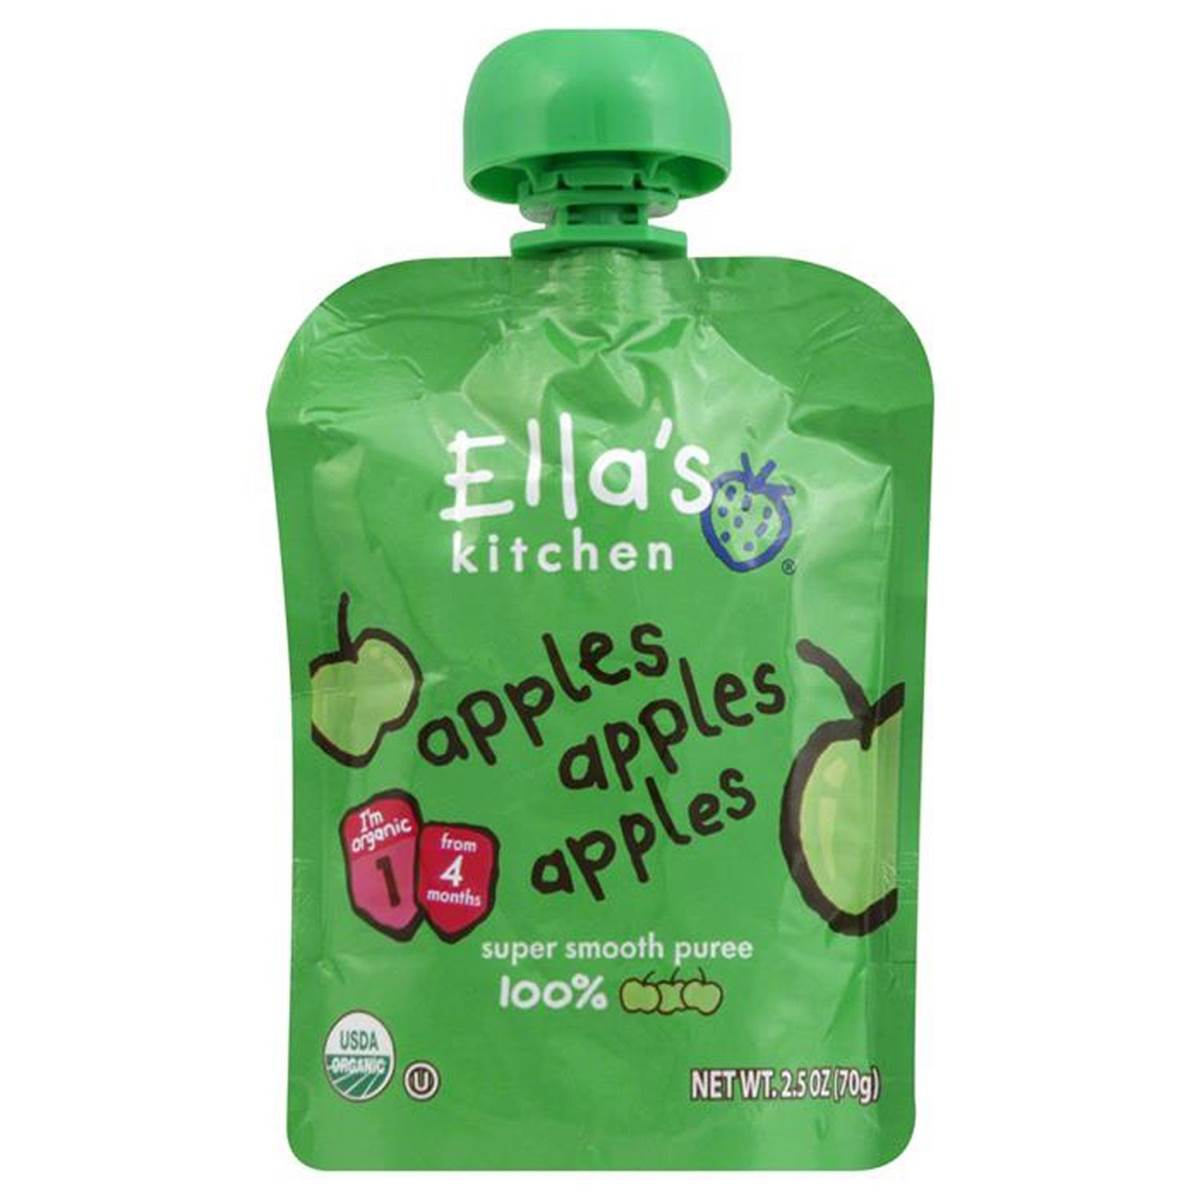 Ella's Kitchen Apples Apples Apples - 70g